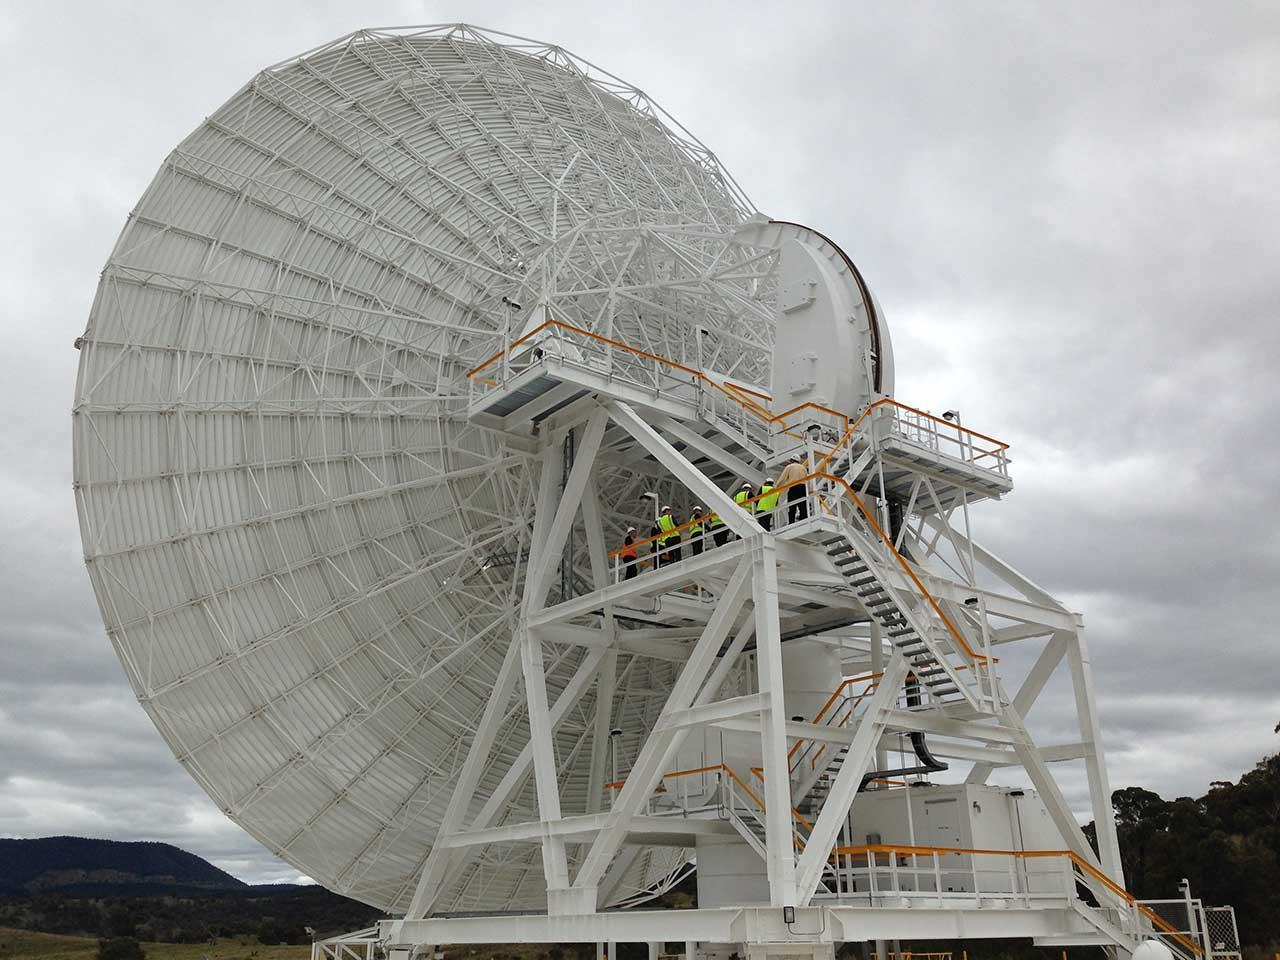 GIANT: People are turned into small toys against the enormous size of Deep Space Station 35's 34-metre dish.